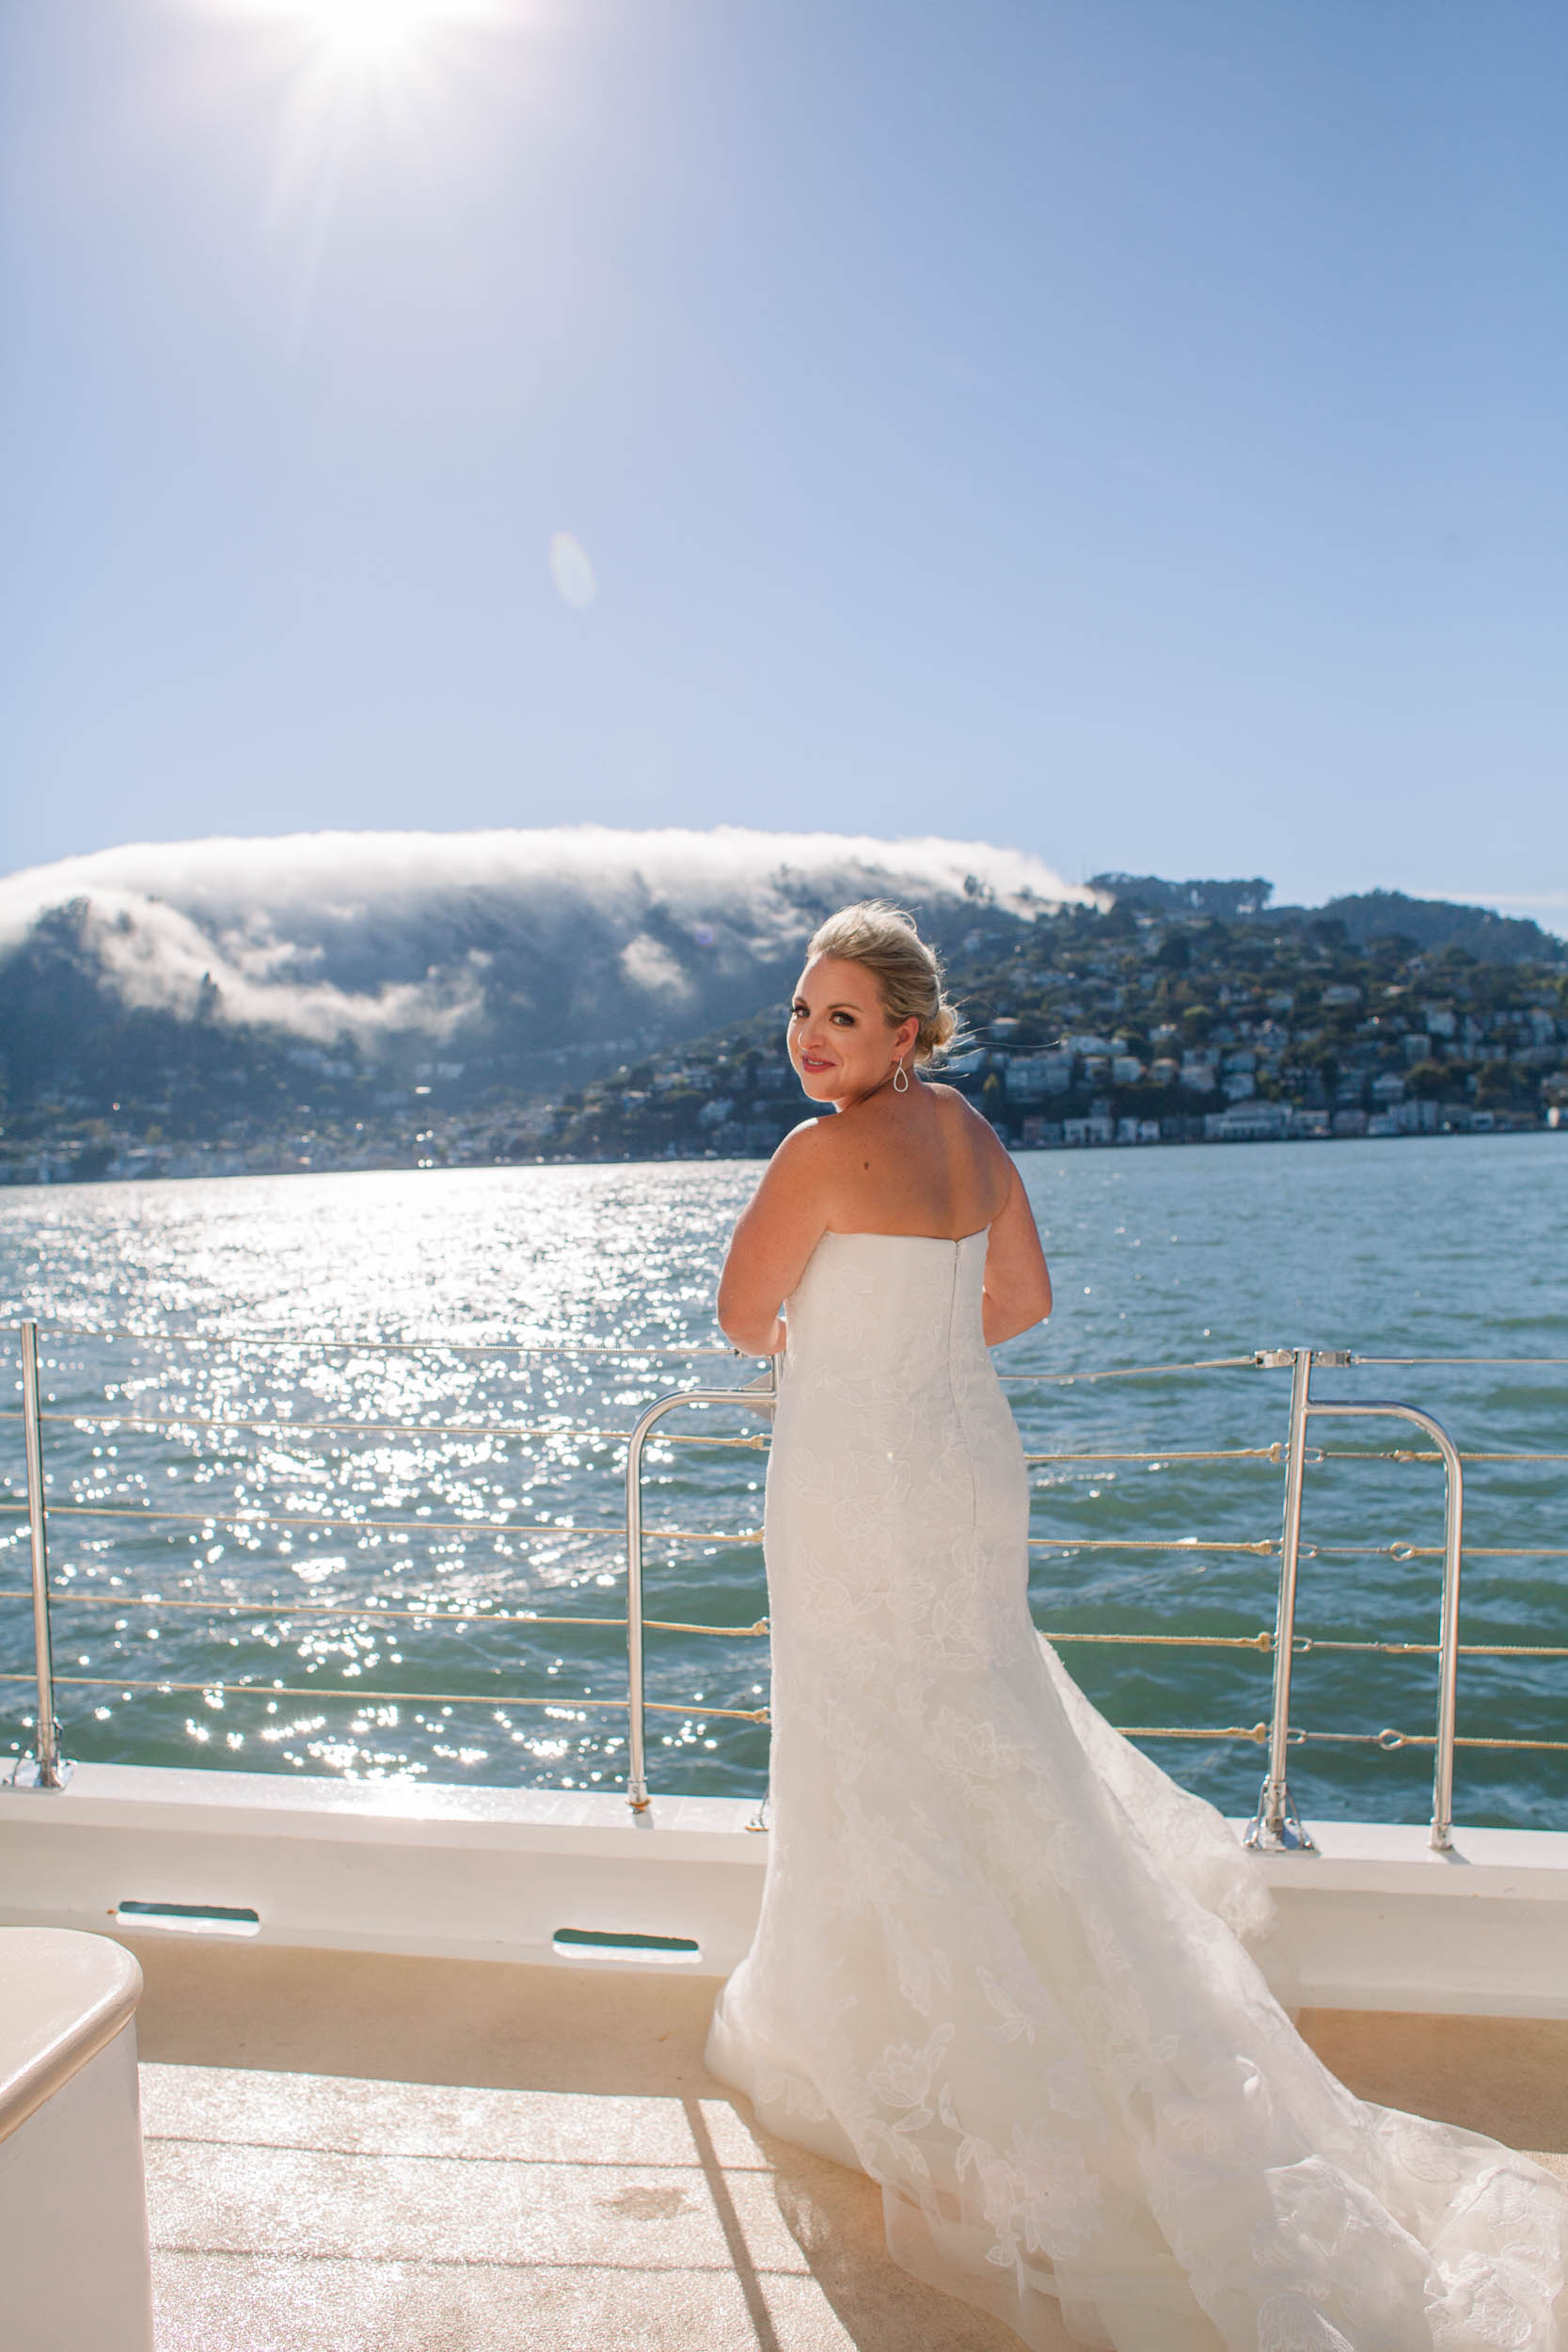 092218ER837_Sausalito Yacht Club Wedding_Buena Lane Photography.jpg